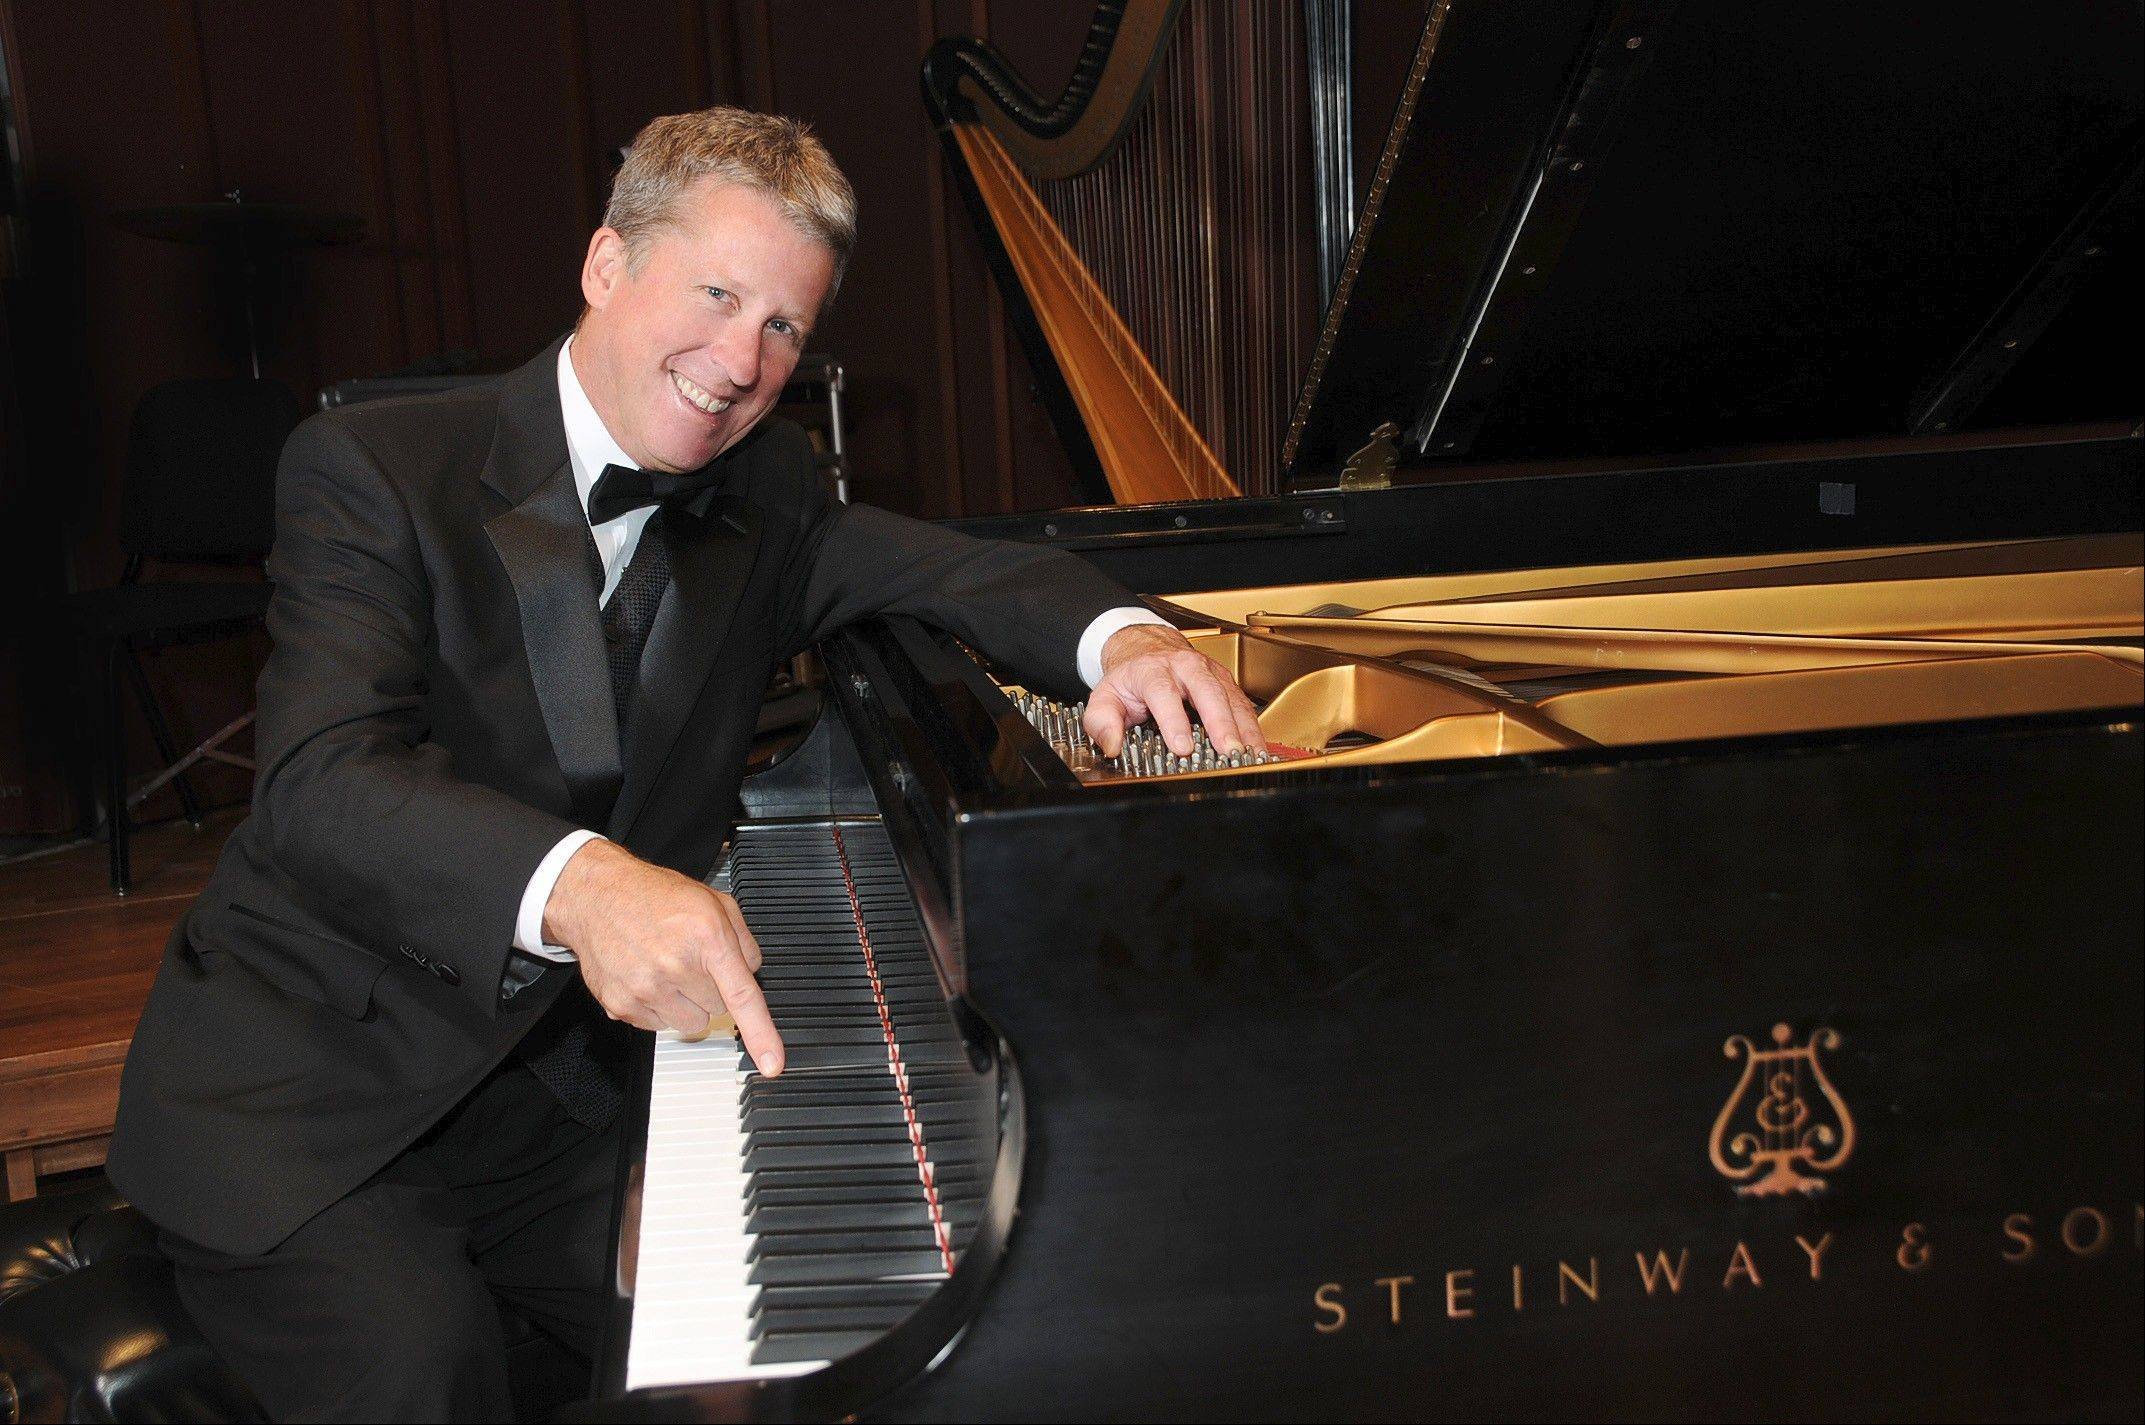 Pianist and audience favorite Rich Ridenour returns to perform with the Elgin Symphony Orchestra on Dec. 15-16.